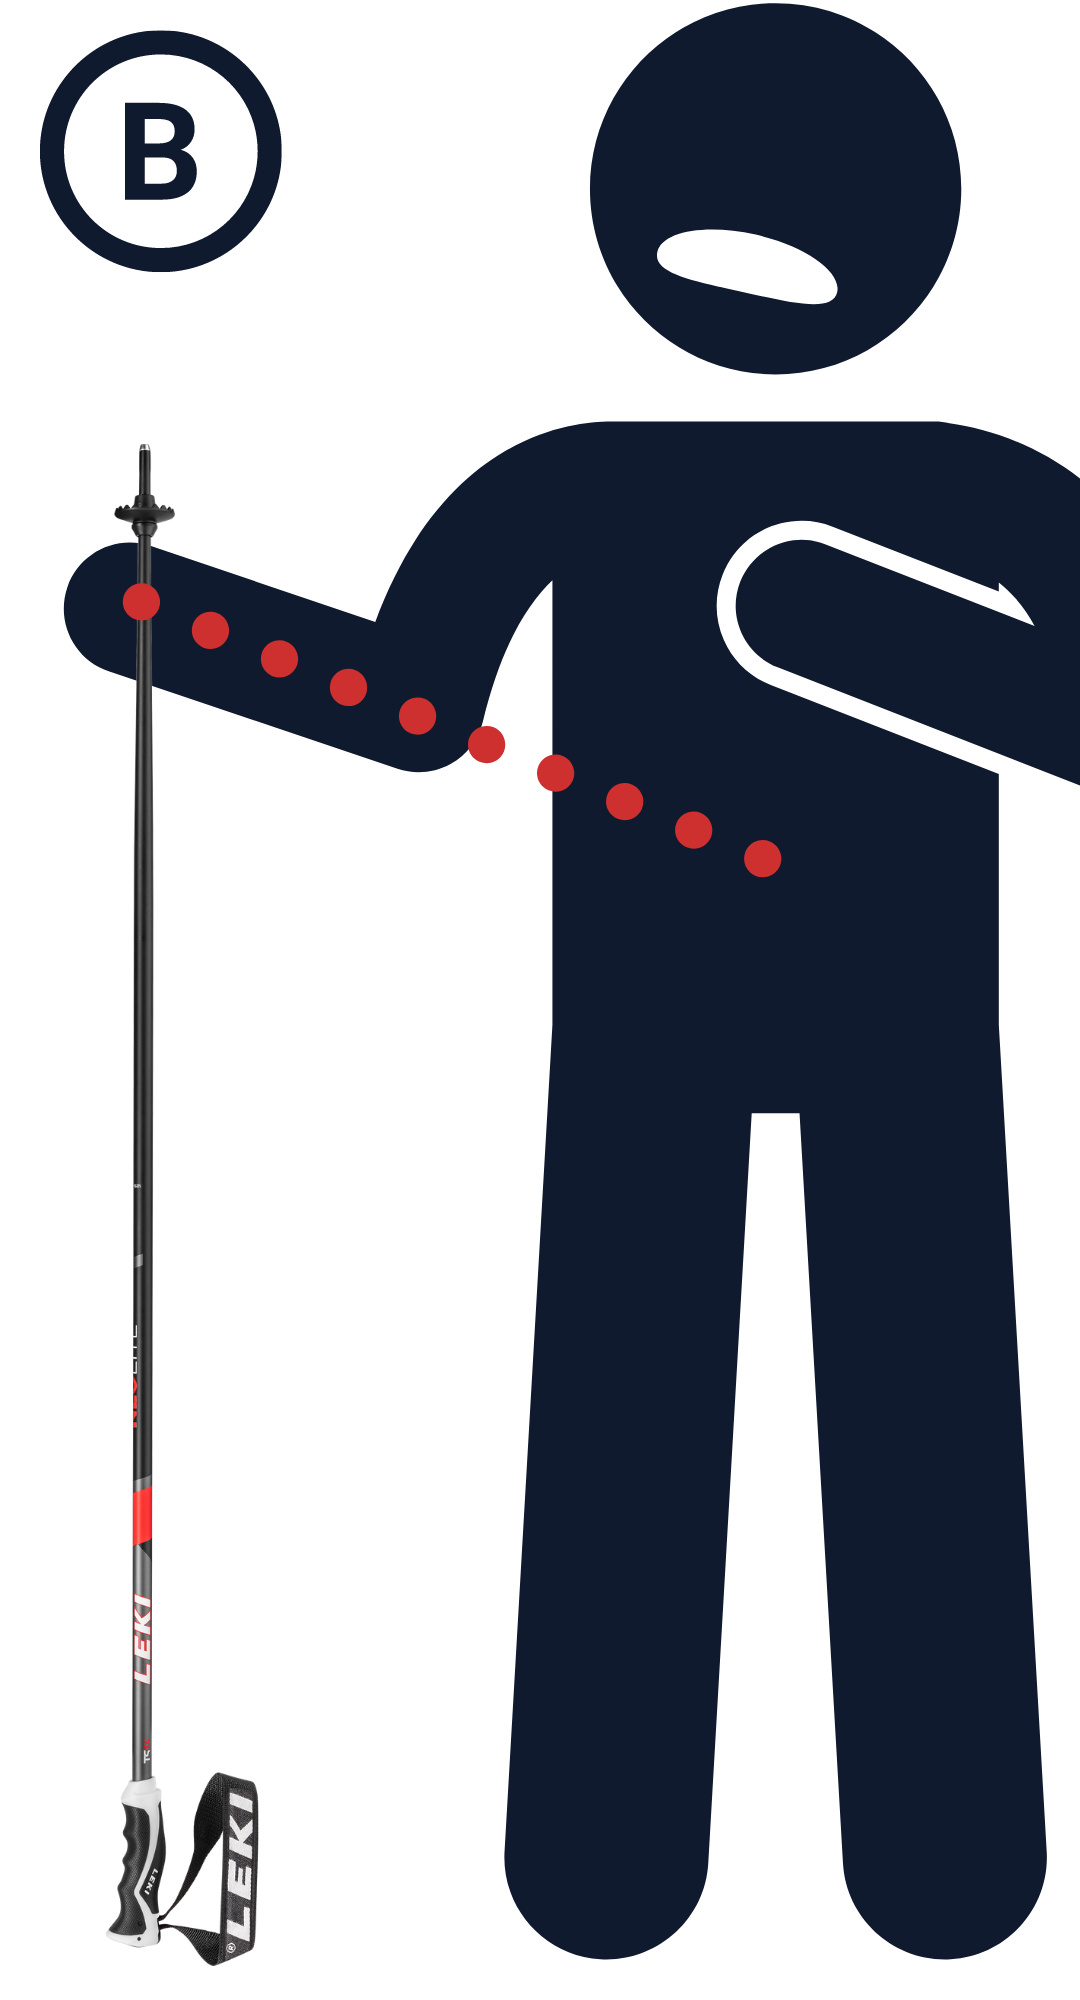 Figure B - A person holding a ski pole that is too long with their elbow bent at under 90 degrees